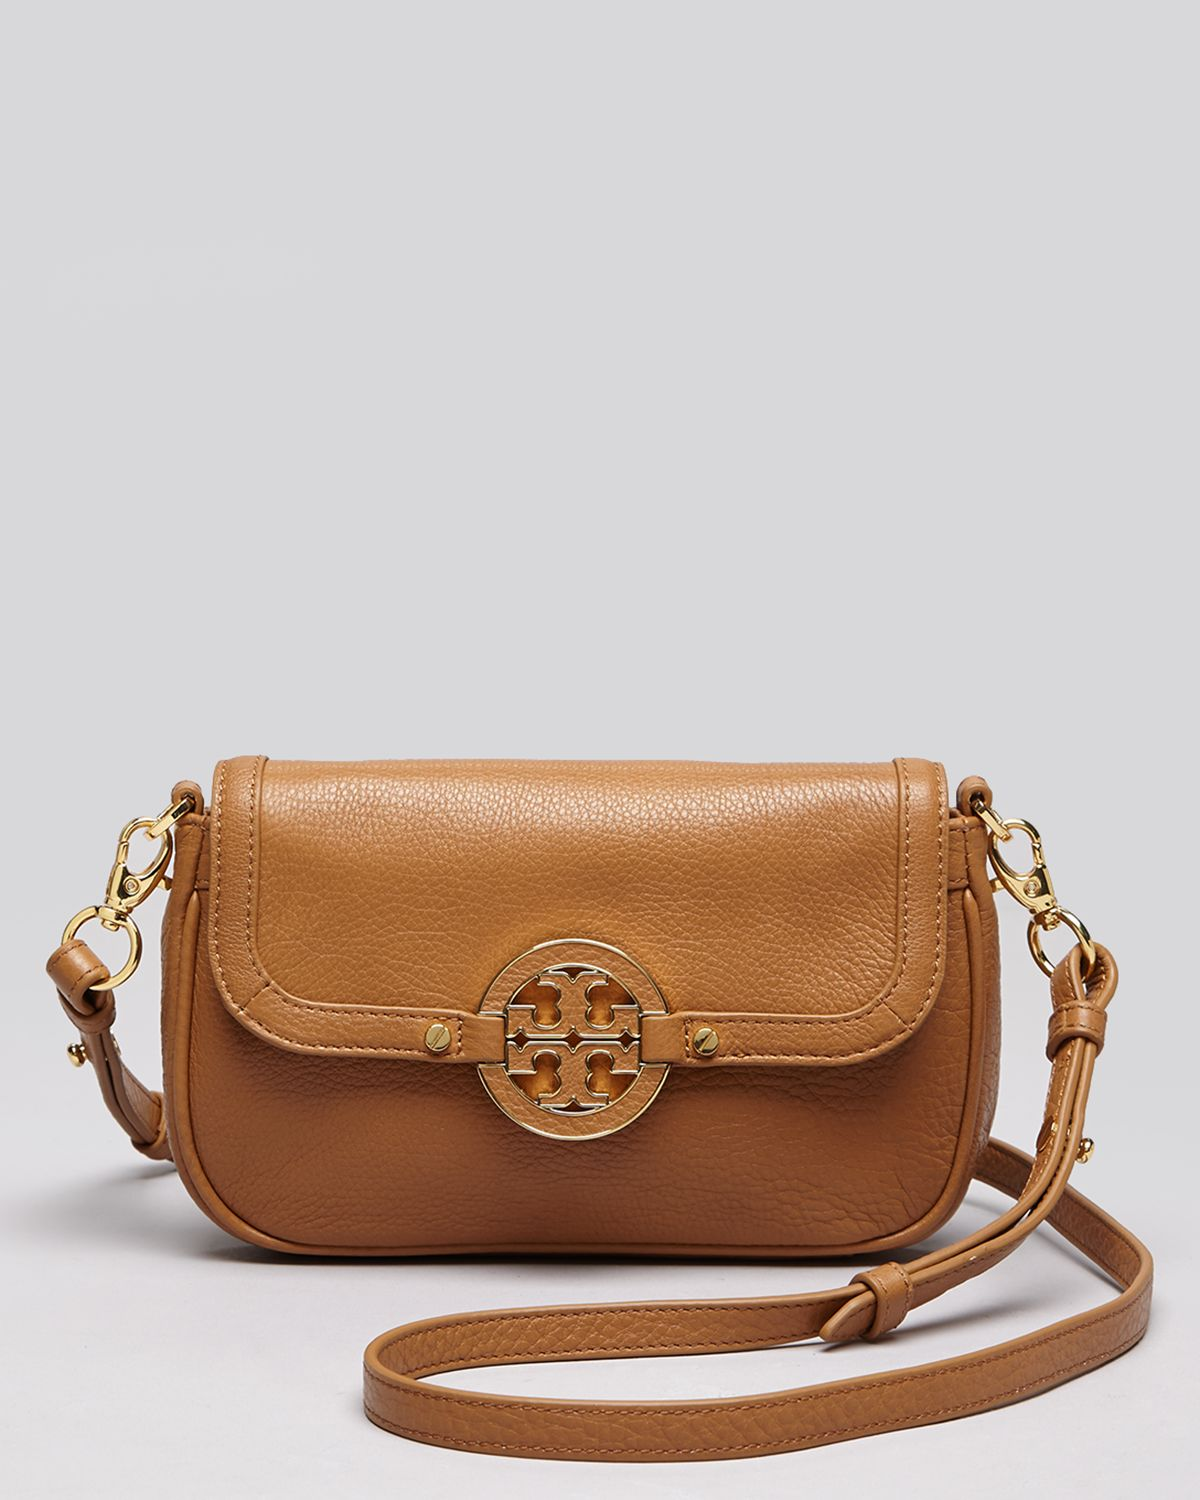 bef0a4c32b2 Gallery. Previously sold at: Bloomingdale's · Women's Tory Burch Amanda